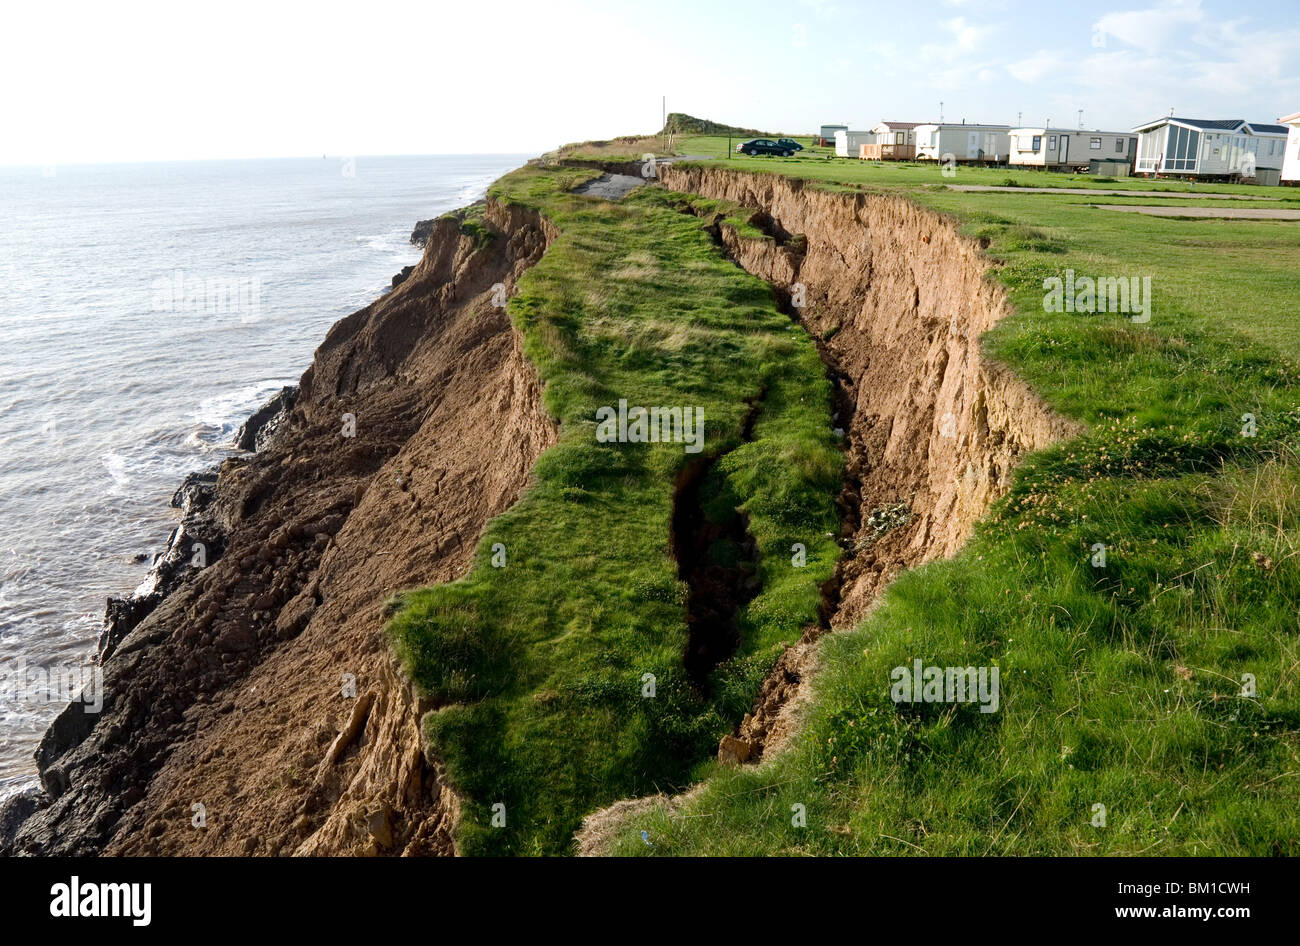 Coastal erosion with active landslips in glacial till aldbrough coastal erosion with active landslips in glacial till aldbrough holderness coast humberside england united kingdom europe thecheapjerseys Image collections